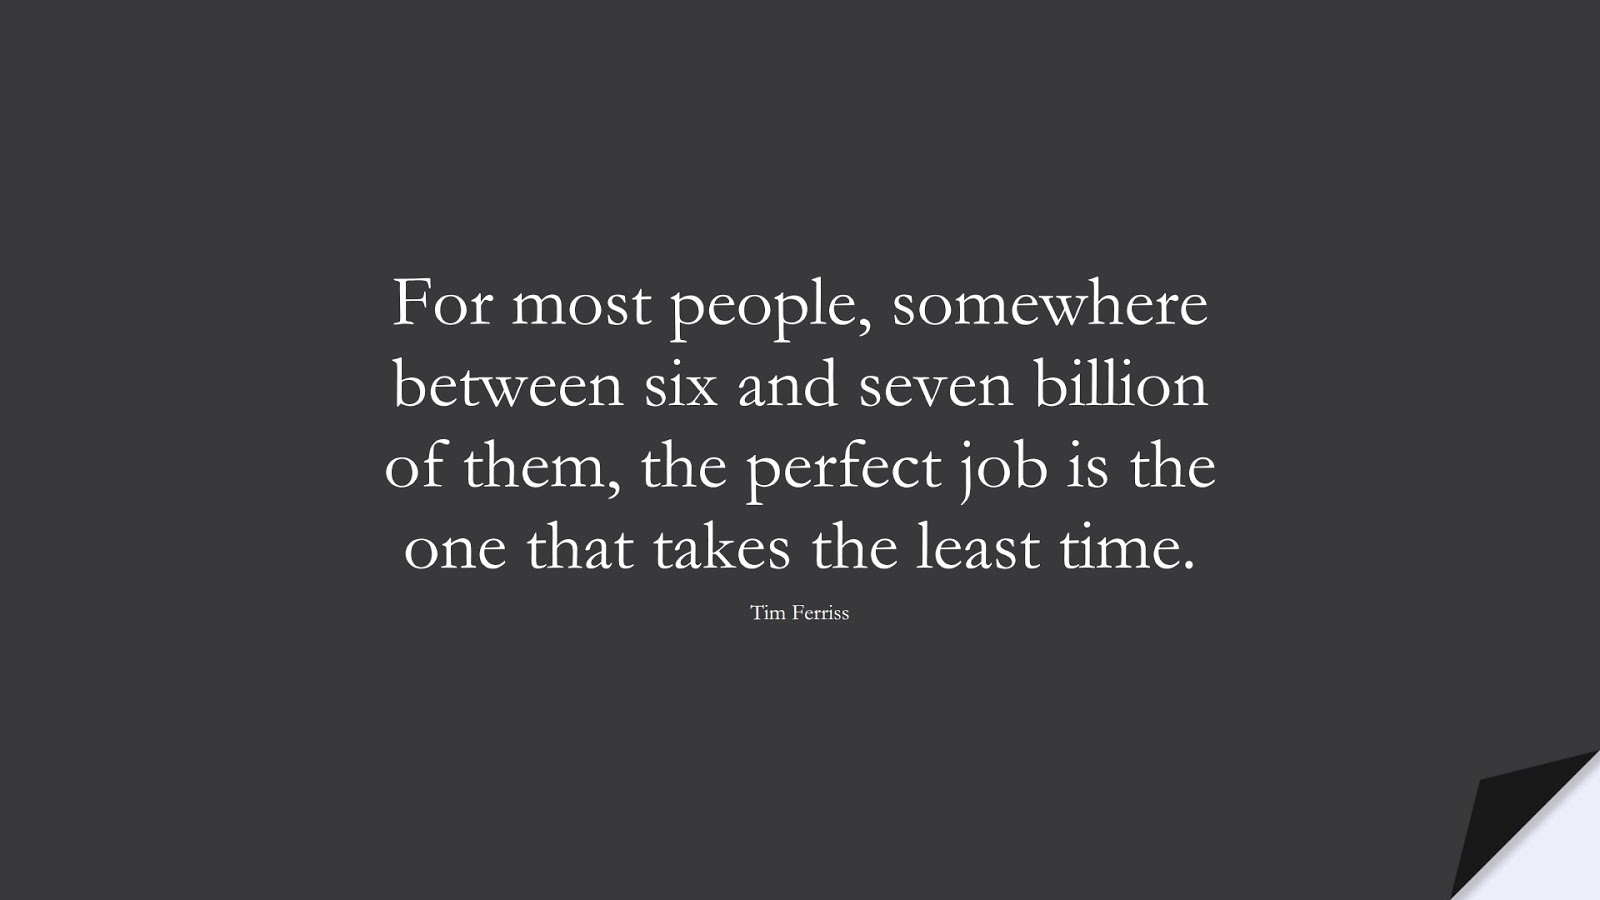 For most people, somewhere between six and seven billion of them, the perfect job is the one that takes the least time. (Tim Ferriss);  #TimFerrissQuotes